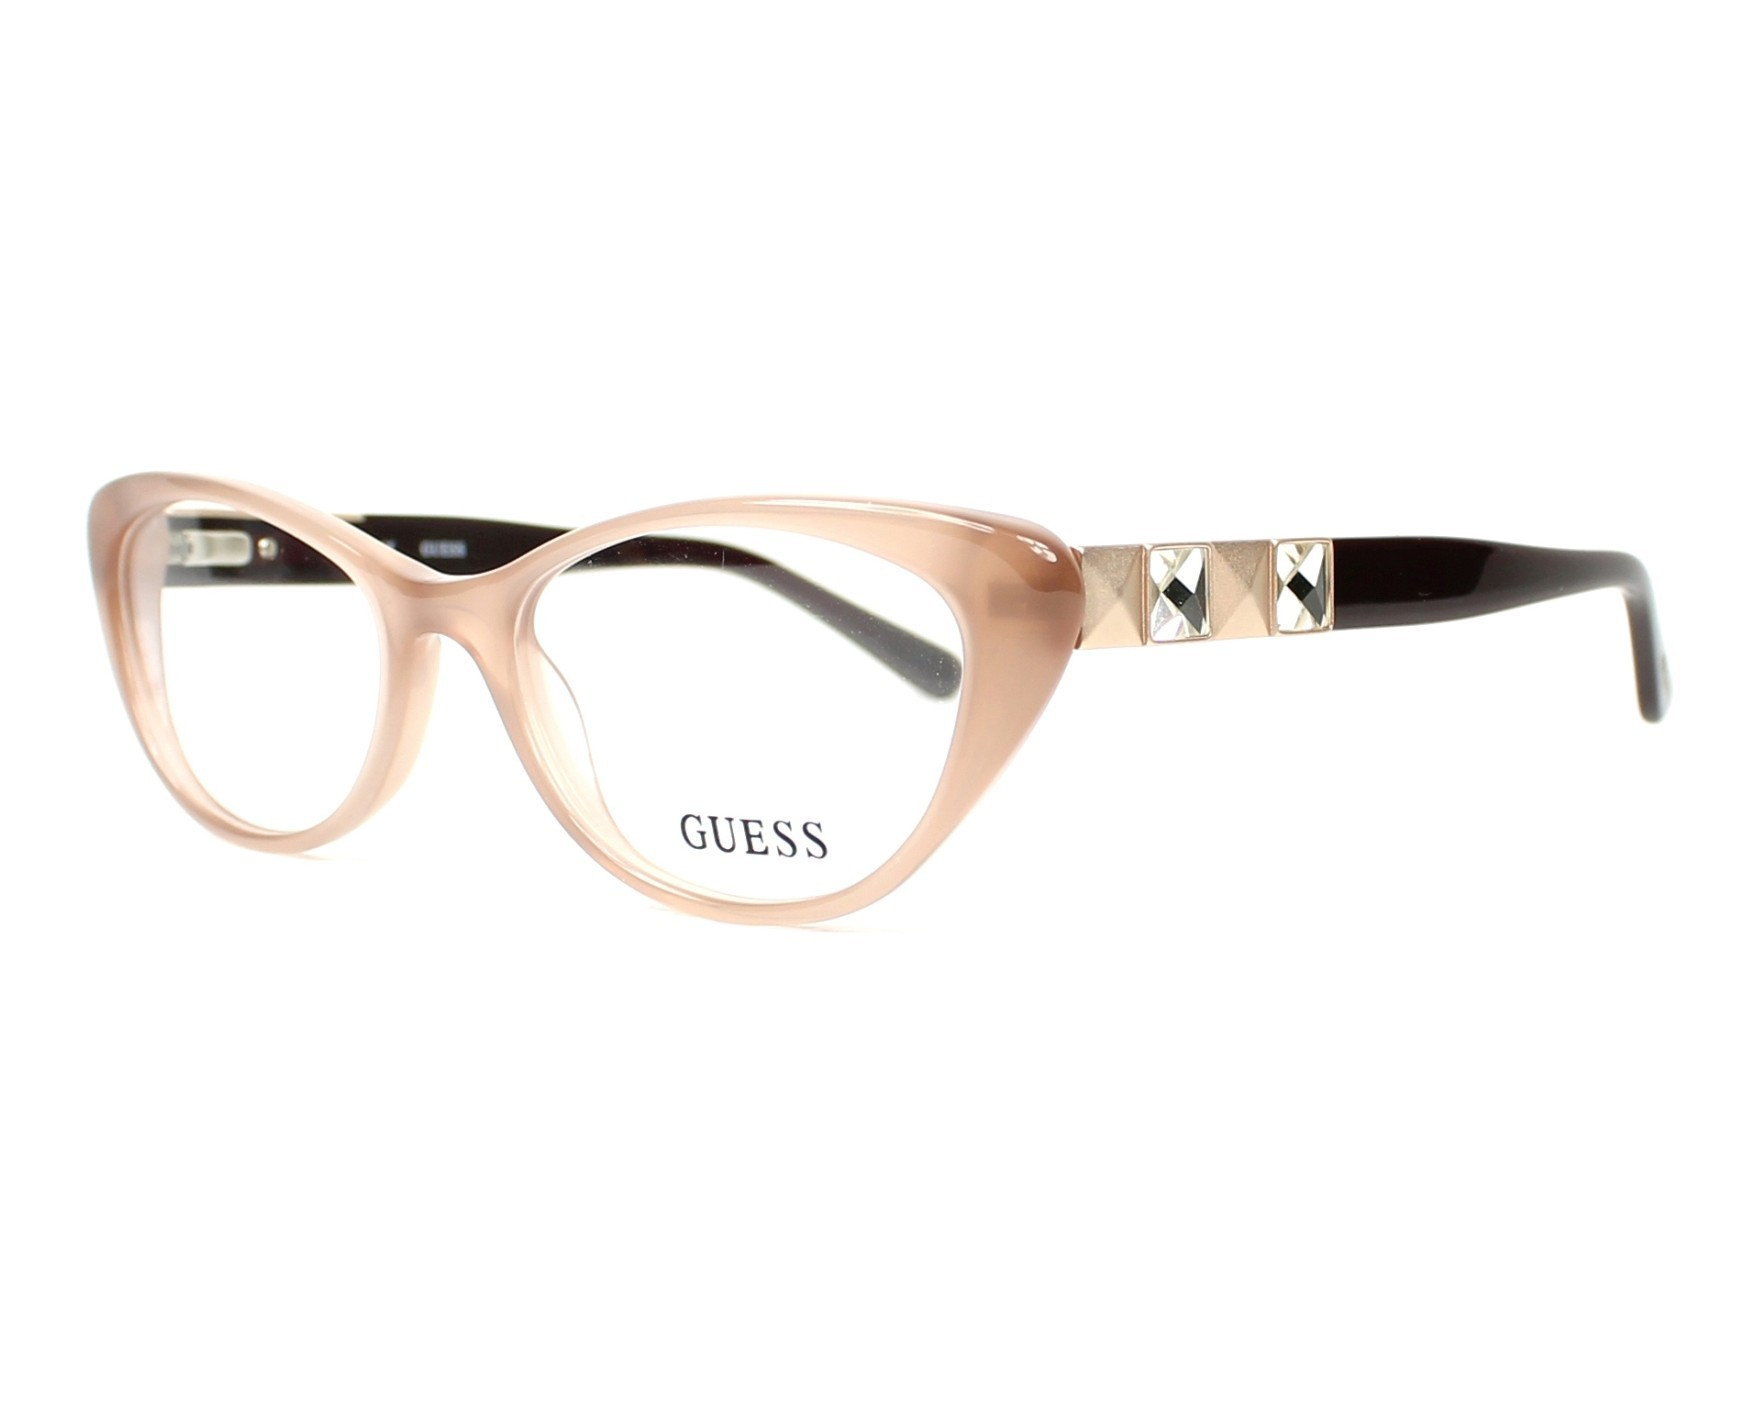 eyeglasses Guess GU-2415 BE - Beige Brown choc profile view d38e0201f95